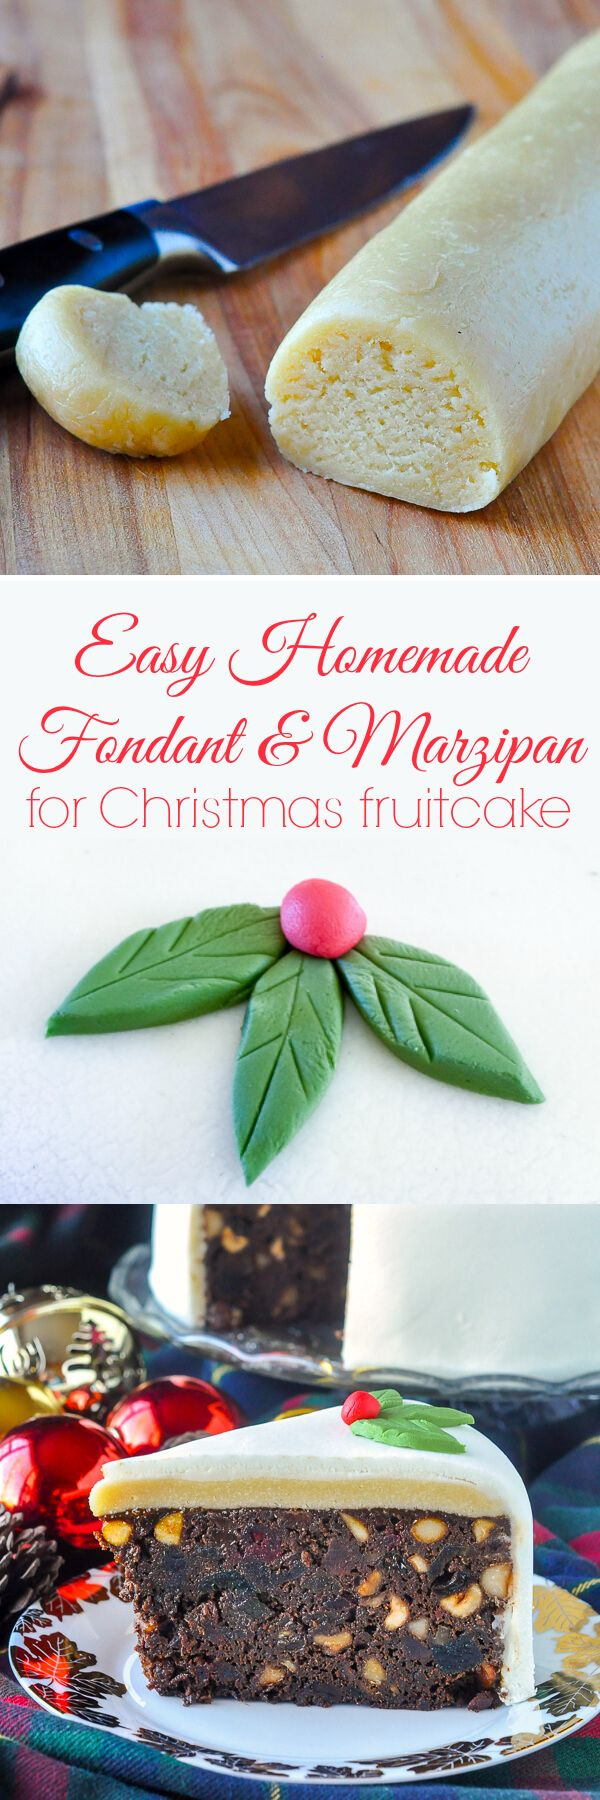 Easy Marshmallow Fondant & Homemade Marzipan - homemade fondant & marzipan cost far less, are not difficult to prepare and taste better than store bought too!